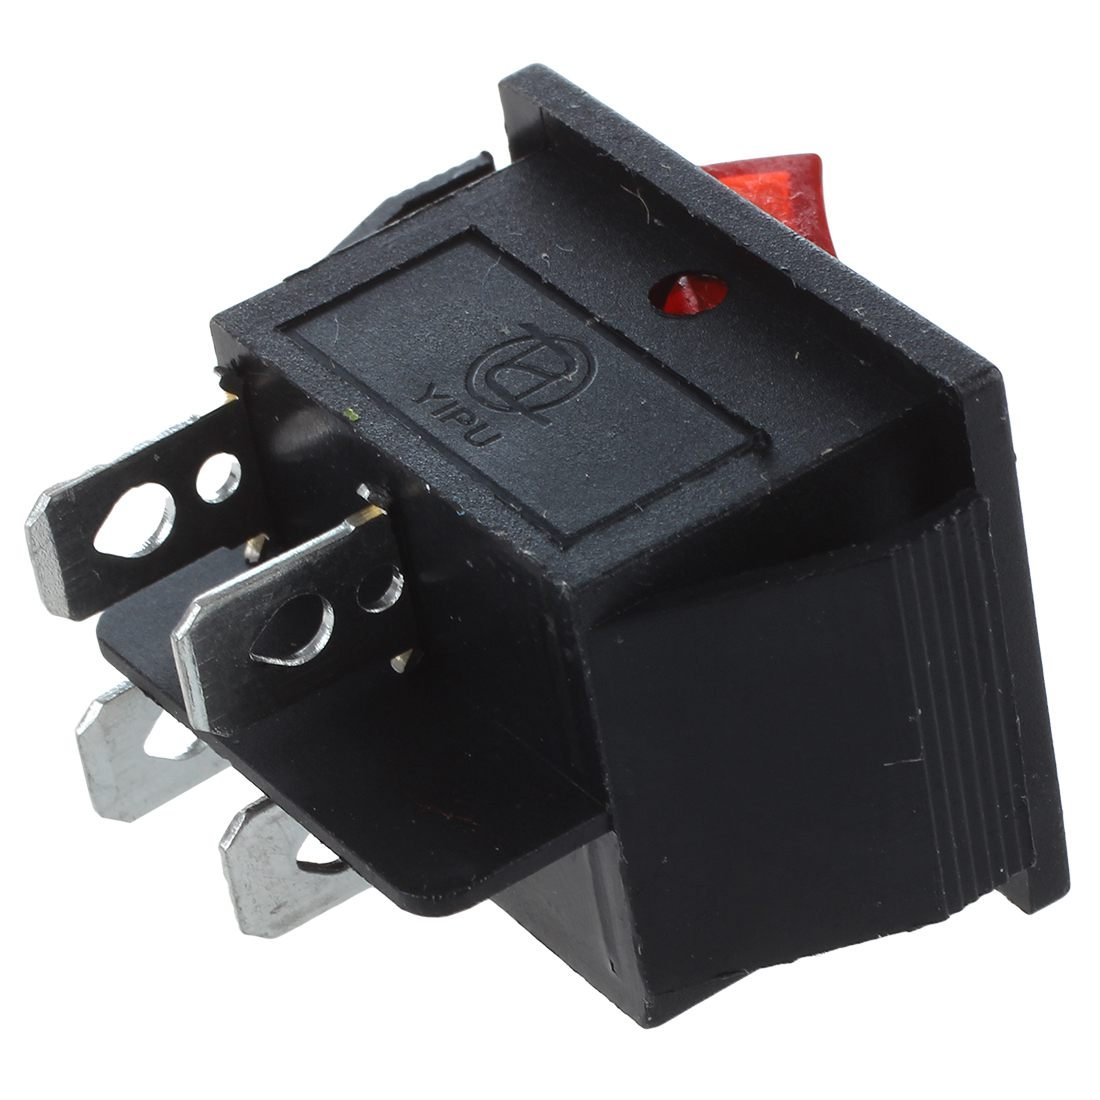 TOOGOO(R) 16A/250V 20A/125V AC Red Neon Light ON/OFF DPST Boat Rocker Switch 5 Pcs by TOOGOO(R) (Image #6)